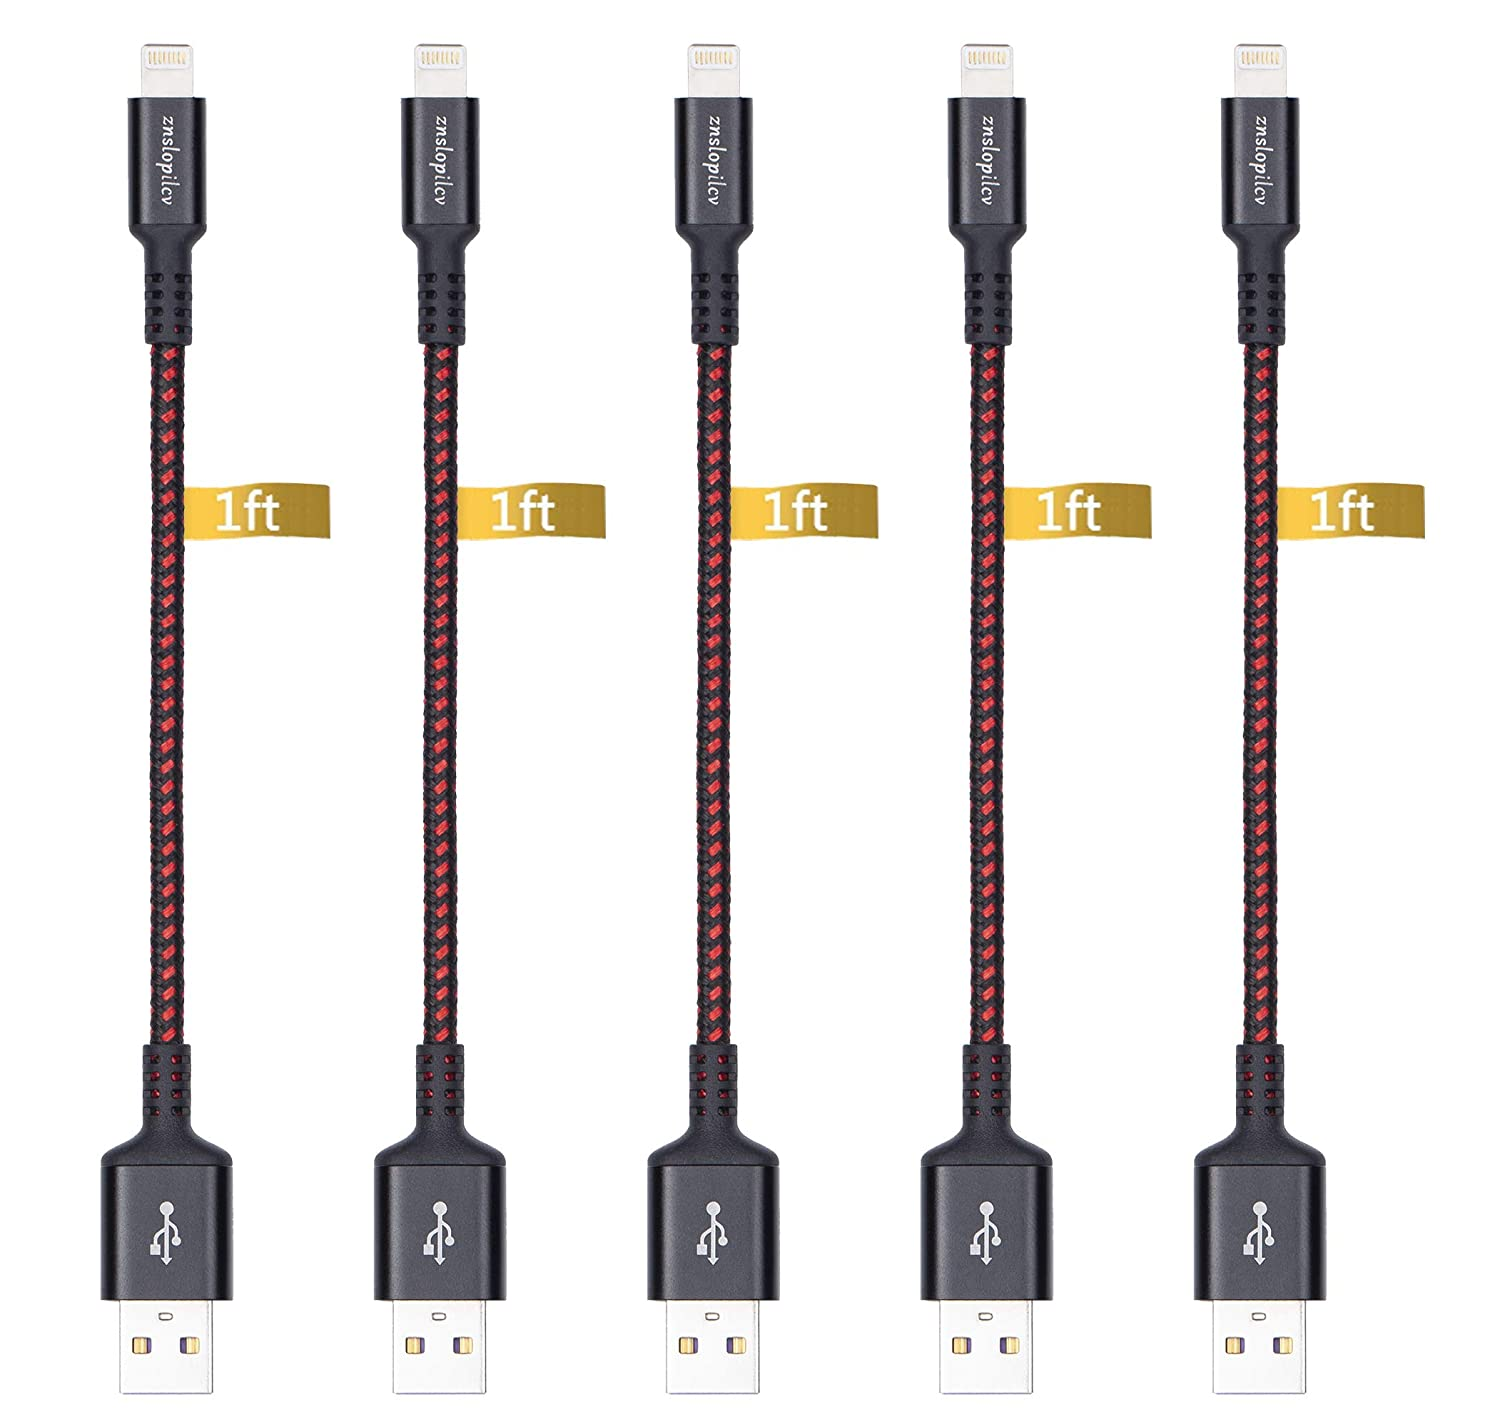 iPhone Charger, Lightning Cable, 5Pack 1FT short iPhone Charger cables to Syncing Charging Cable Data Cord Compatible with iPhone Xs, iPhone Xs MAX, iPhone XR, iPhone X, iPhone 8/7/6/5 /Plus More